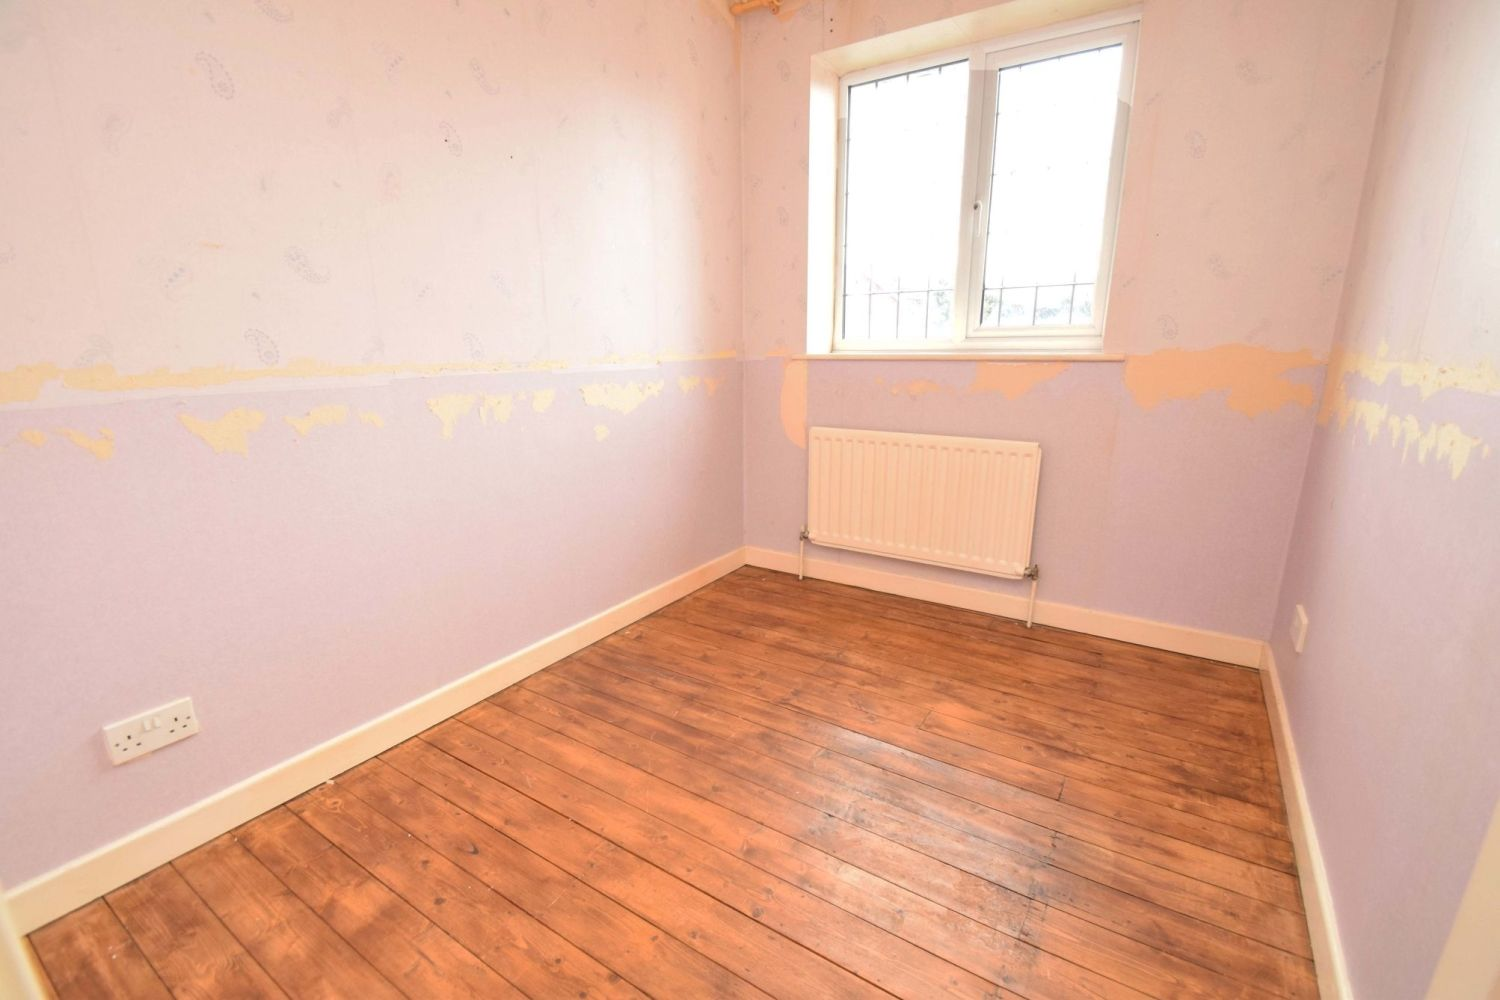 3 bed detached for sale in Avon Close, Stoke Heath, Bromsgrove, B60  - Property Image 10